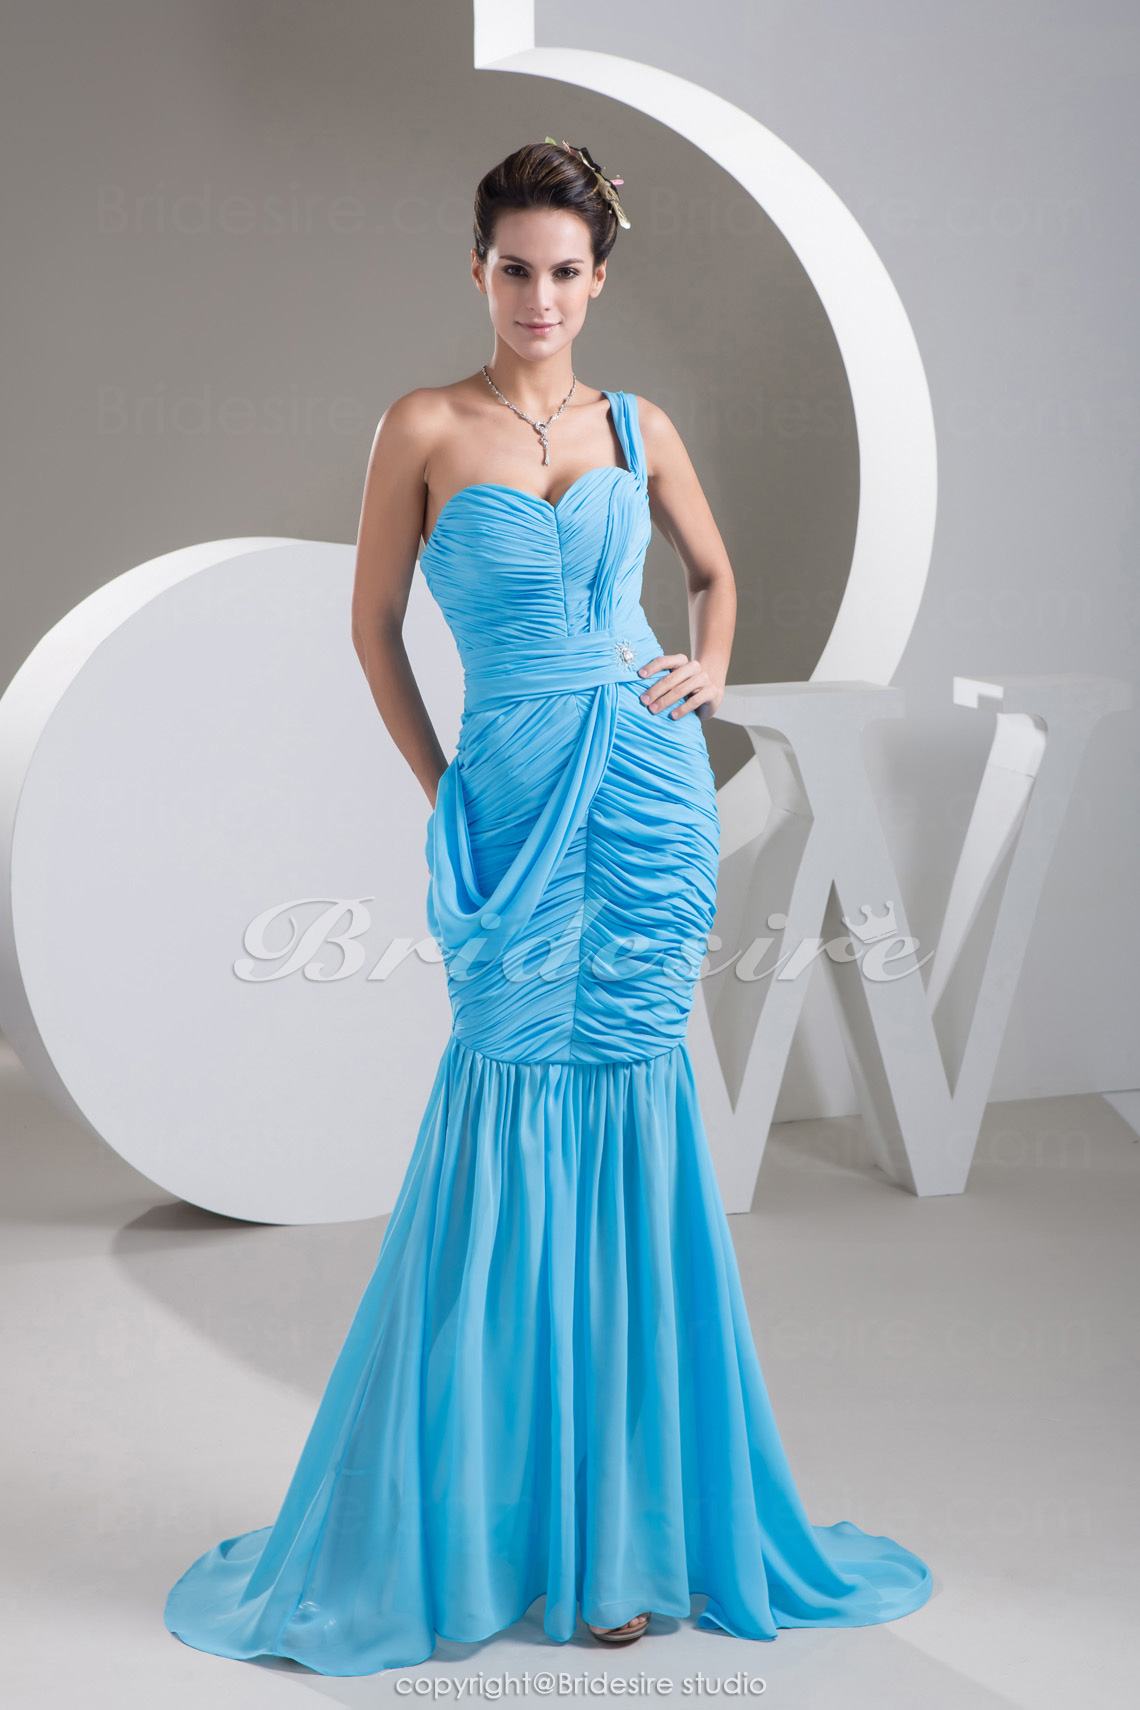 Trumpet/Mermaid One Shoulder Sweep/Brush Train Sleeveless Chiffo